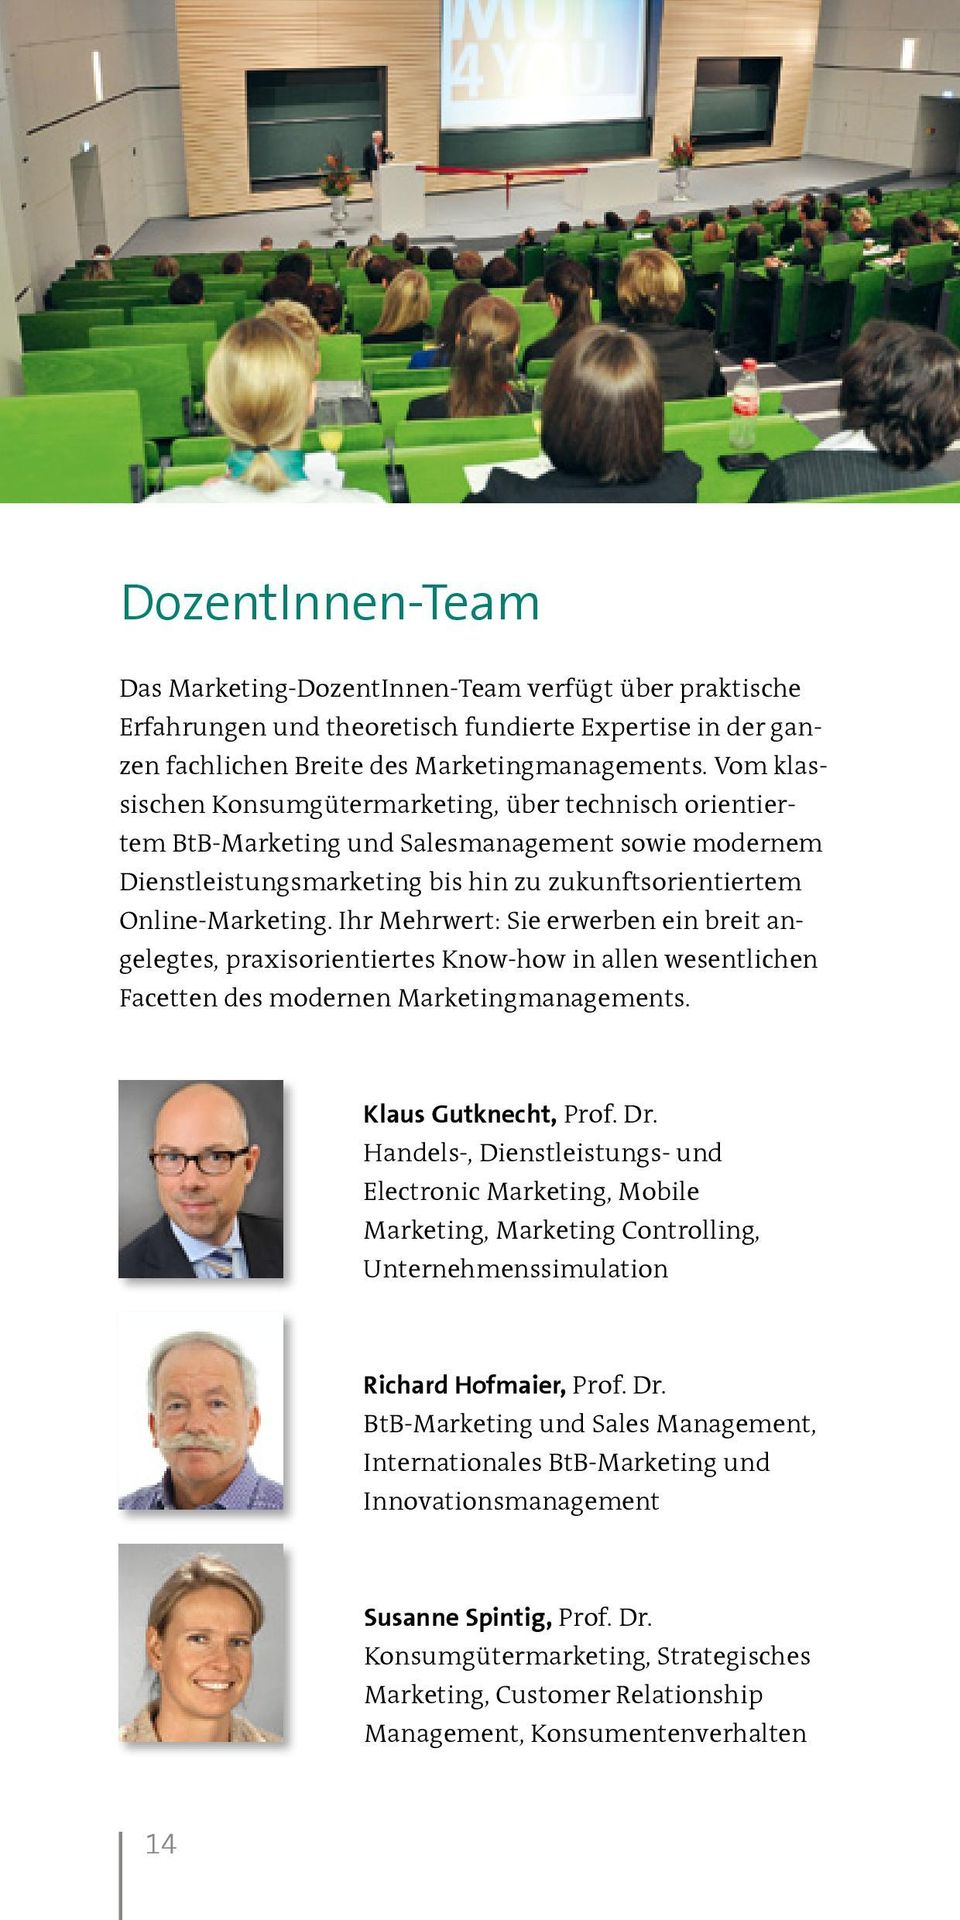 Ihr Mehrwert: Sie erwerben ein breit angelegtes, praxisorientiertes Know-how in allen wesentlichen Facetten des modernen Marketingmanagements. Klaus Gutknecht, Prof. Dr.